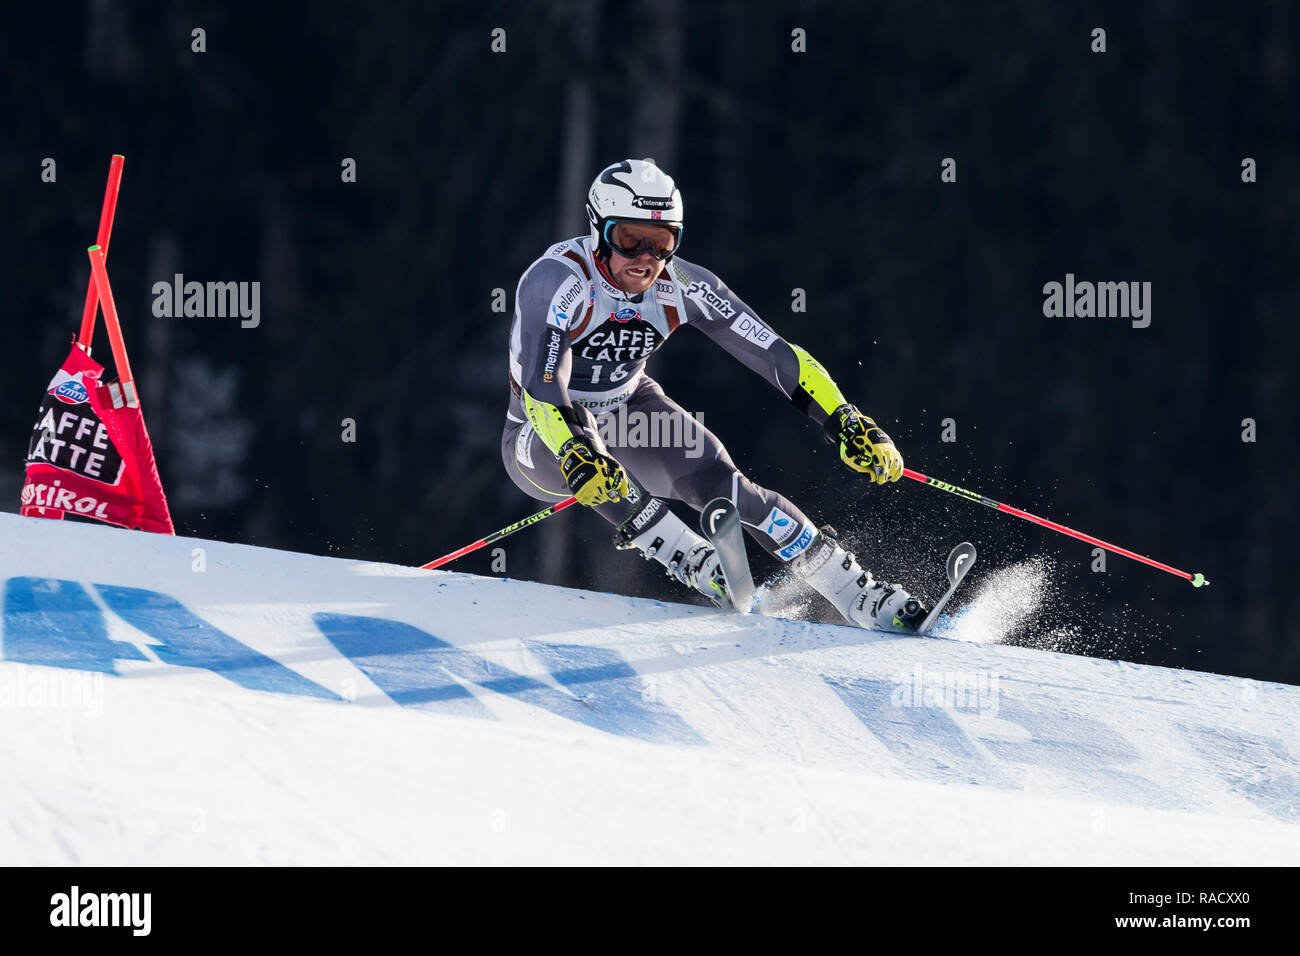 Alta Badia, Italy 16 December 2018.  KILDE Aleksander Aamodt (Nor) competing in the Audi Fis Alpine Skiing World Cup Men's Giant Slalom Stock Photo